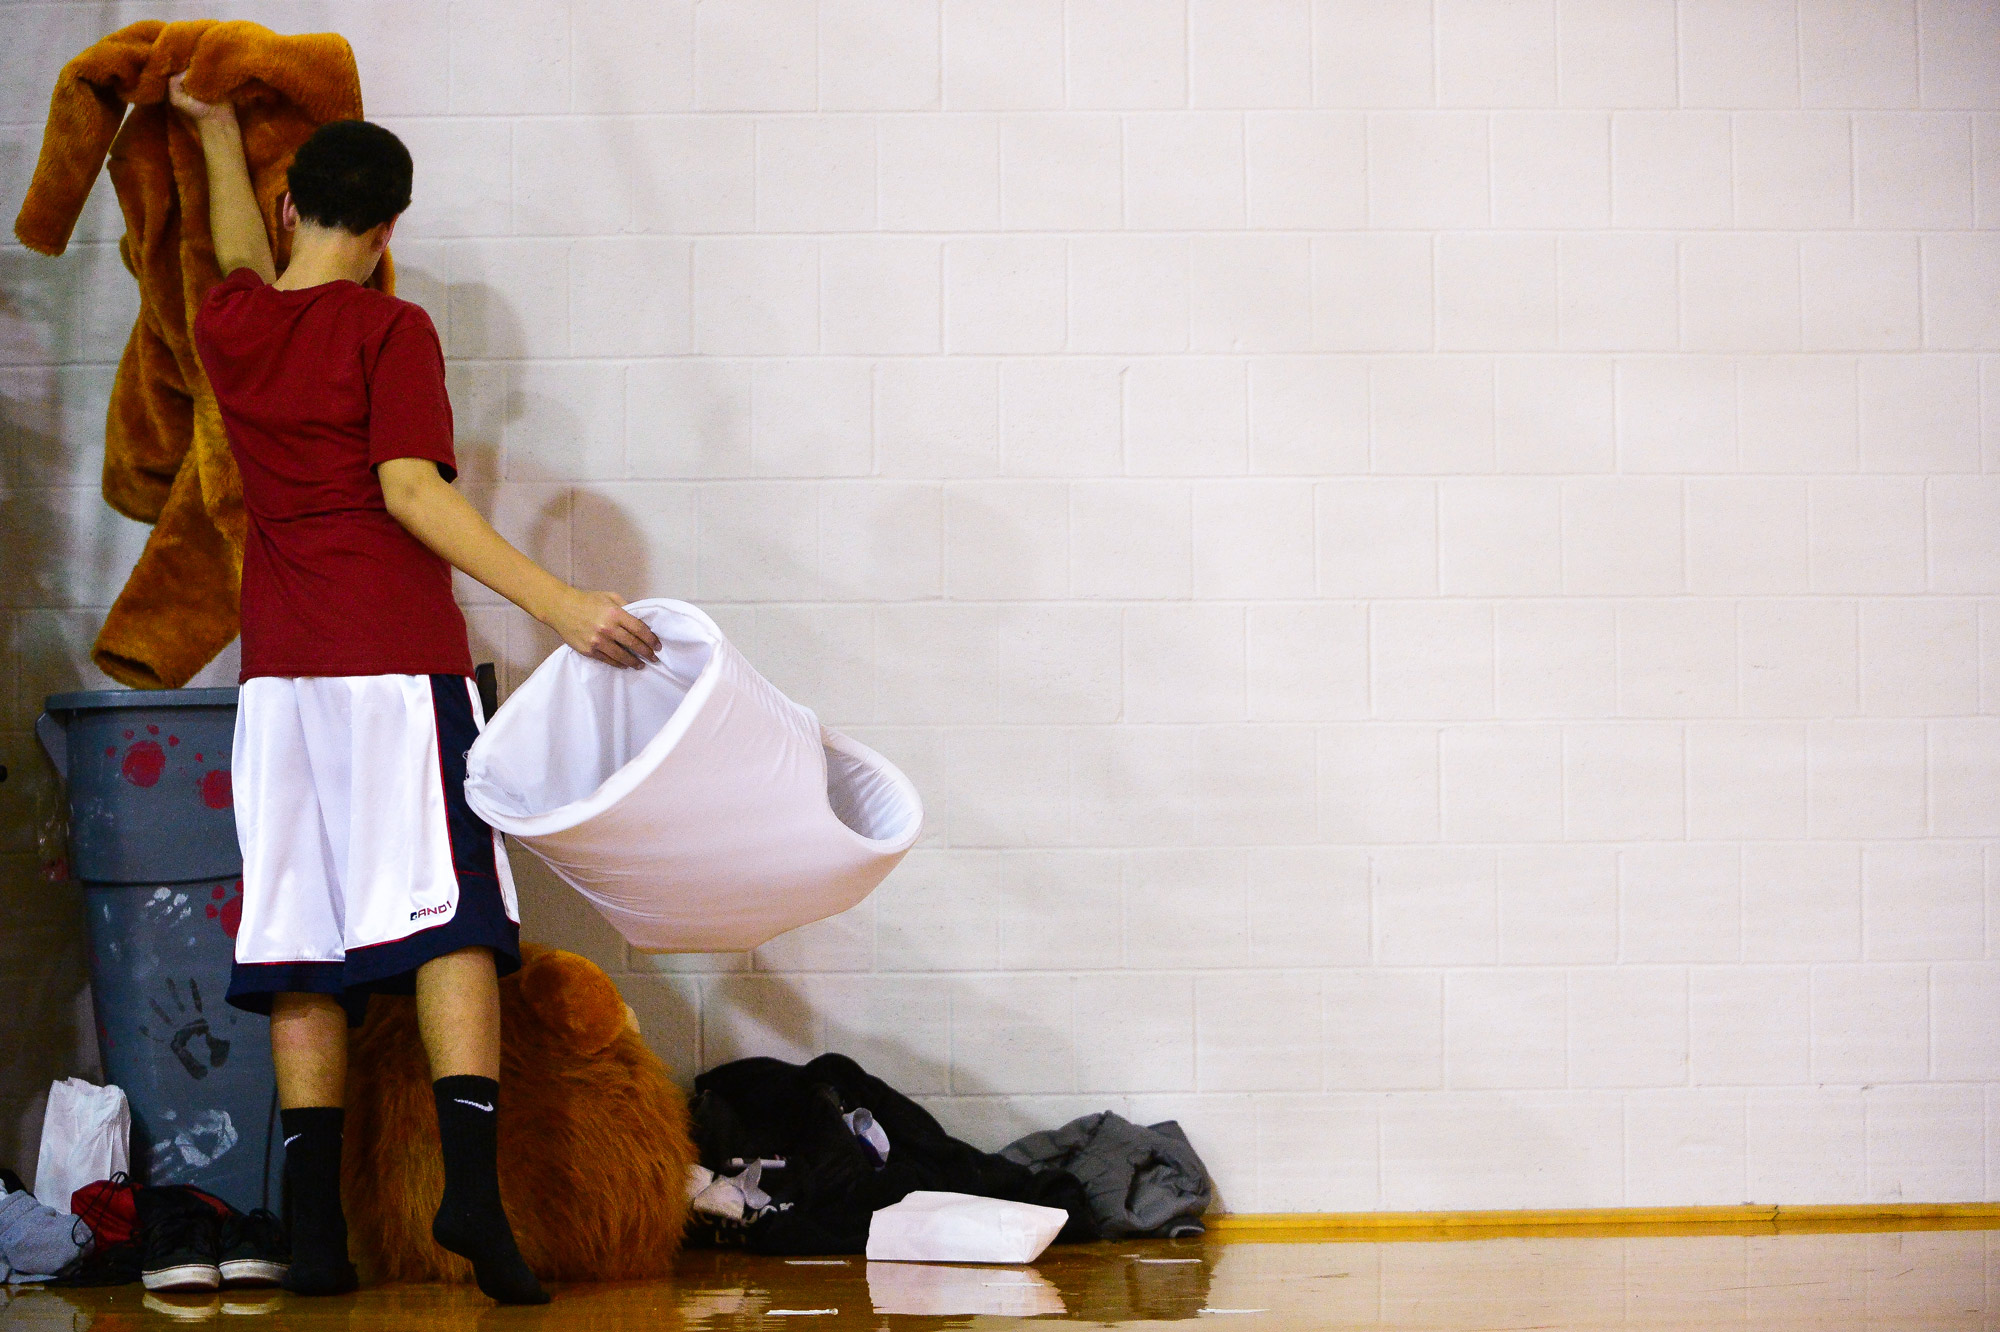 The Dulaney High School Lion removes his costume during their game at Goucher College on Dec. 18, 2013.